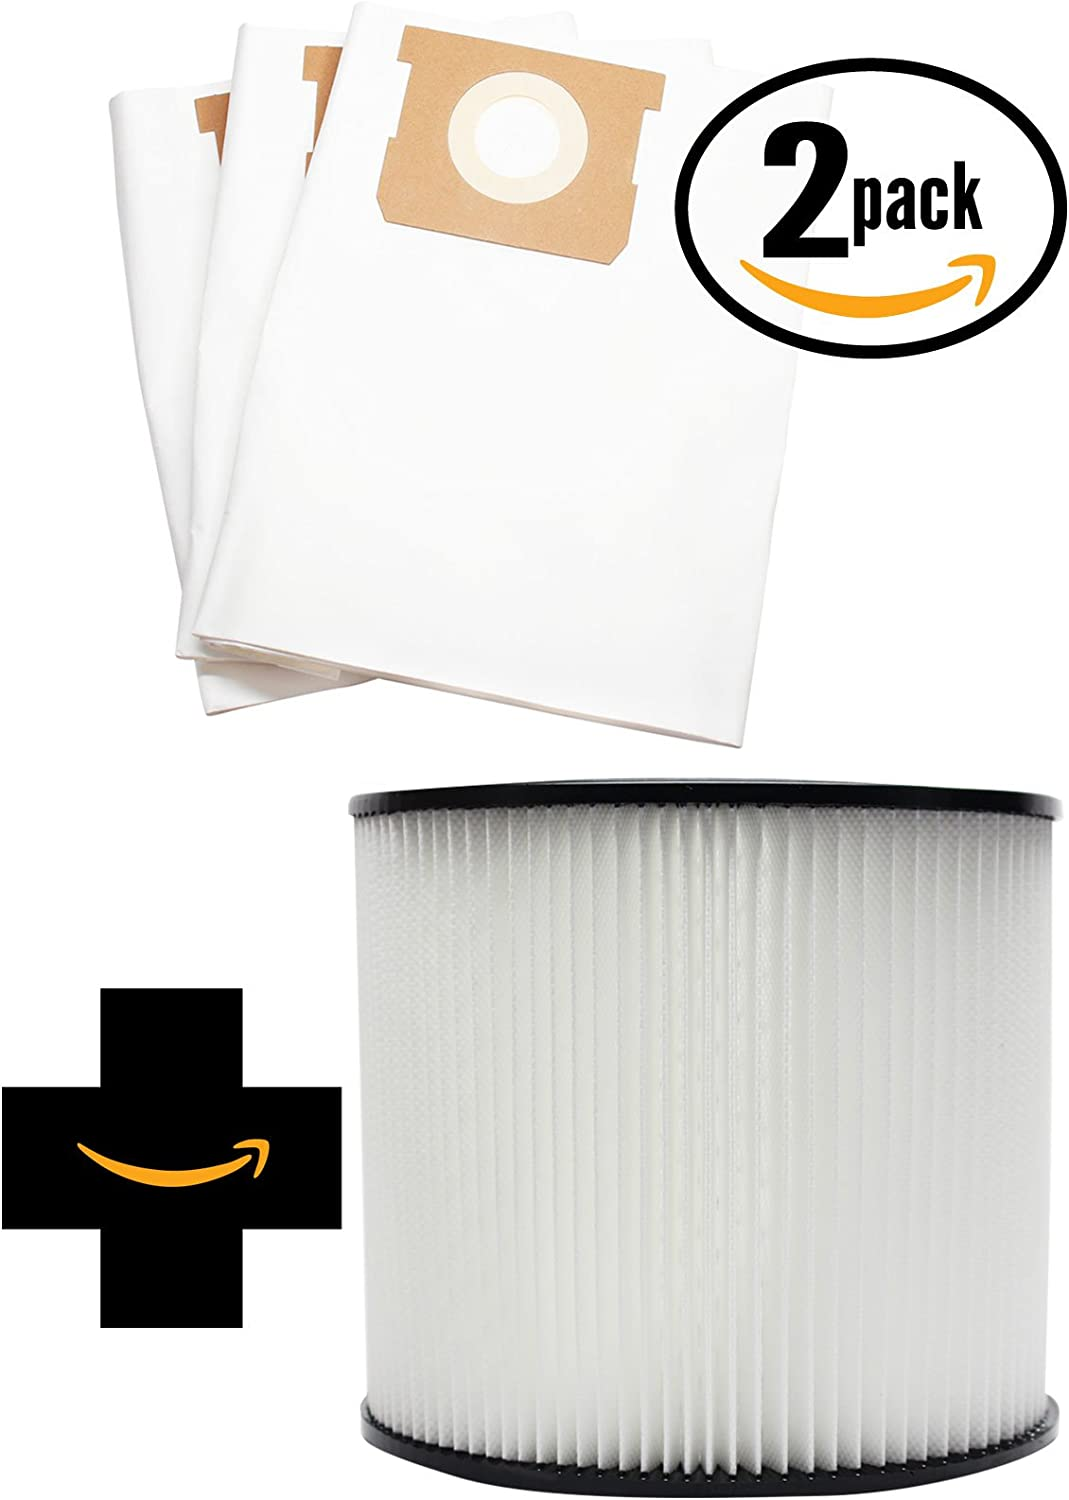 6 Replacement 90661 Vacuum Bags & 90304 Filter for Shop-Vac - Compatible with Shop-Vac CH87-650C, Shop-Vac 587-34-00, Shop-Vac 596-07-00, Shop-Vac Heavy Duty Portable CH87-650C, Shop-Vac Heavy Duty Portable 587-34-00, Shop-Vac 86EM350, Shop-Vac 586-73-00, Shop-Vac 12B300A, Shop-Vac 12B225A